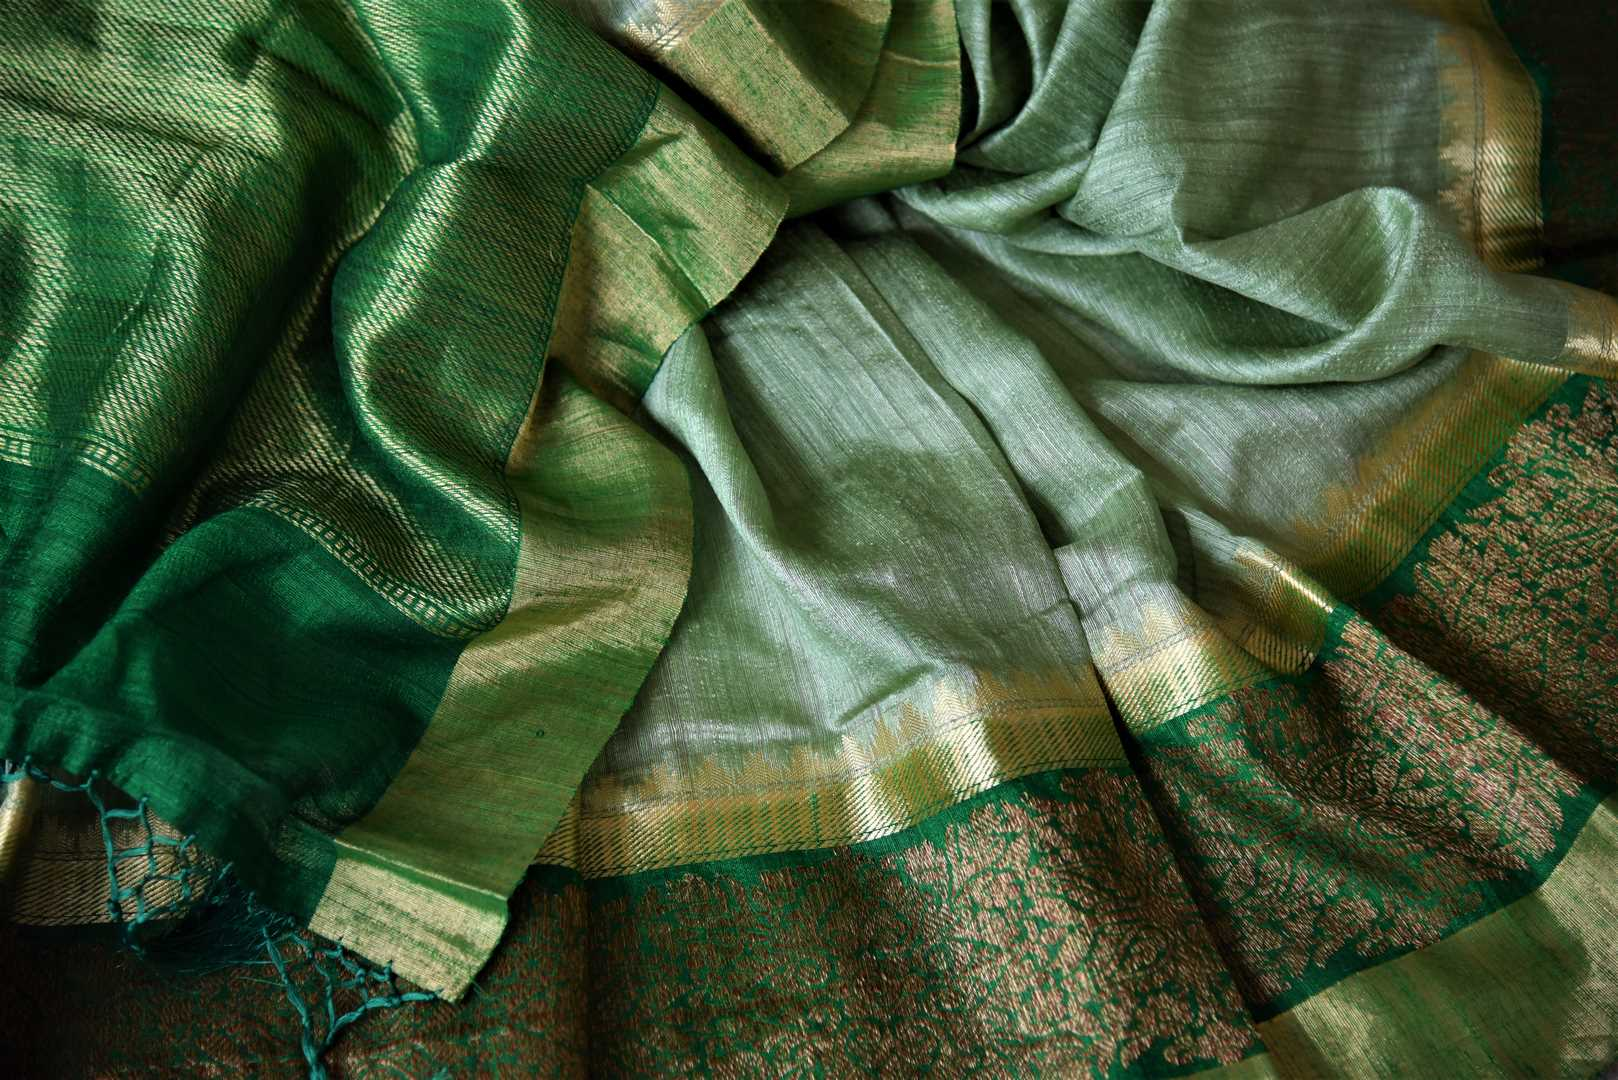 Shop dark green tussar Banarsi saree online in USA with green zari border. Choose tasteful handloom sarees for special occasions from Pure Elegance. Our exclusive Indian fashion store has a myriad of exquisite pure silk saris, tussar sarees, Banarasi sarees for Indian women in USA.-details